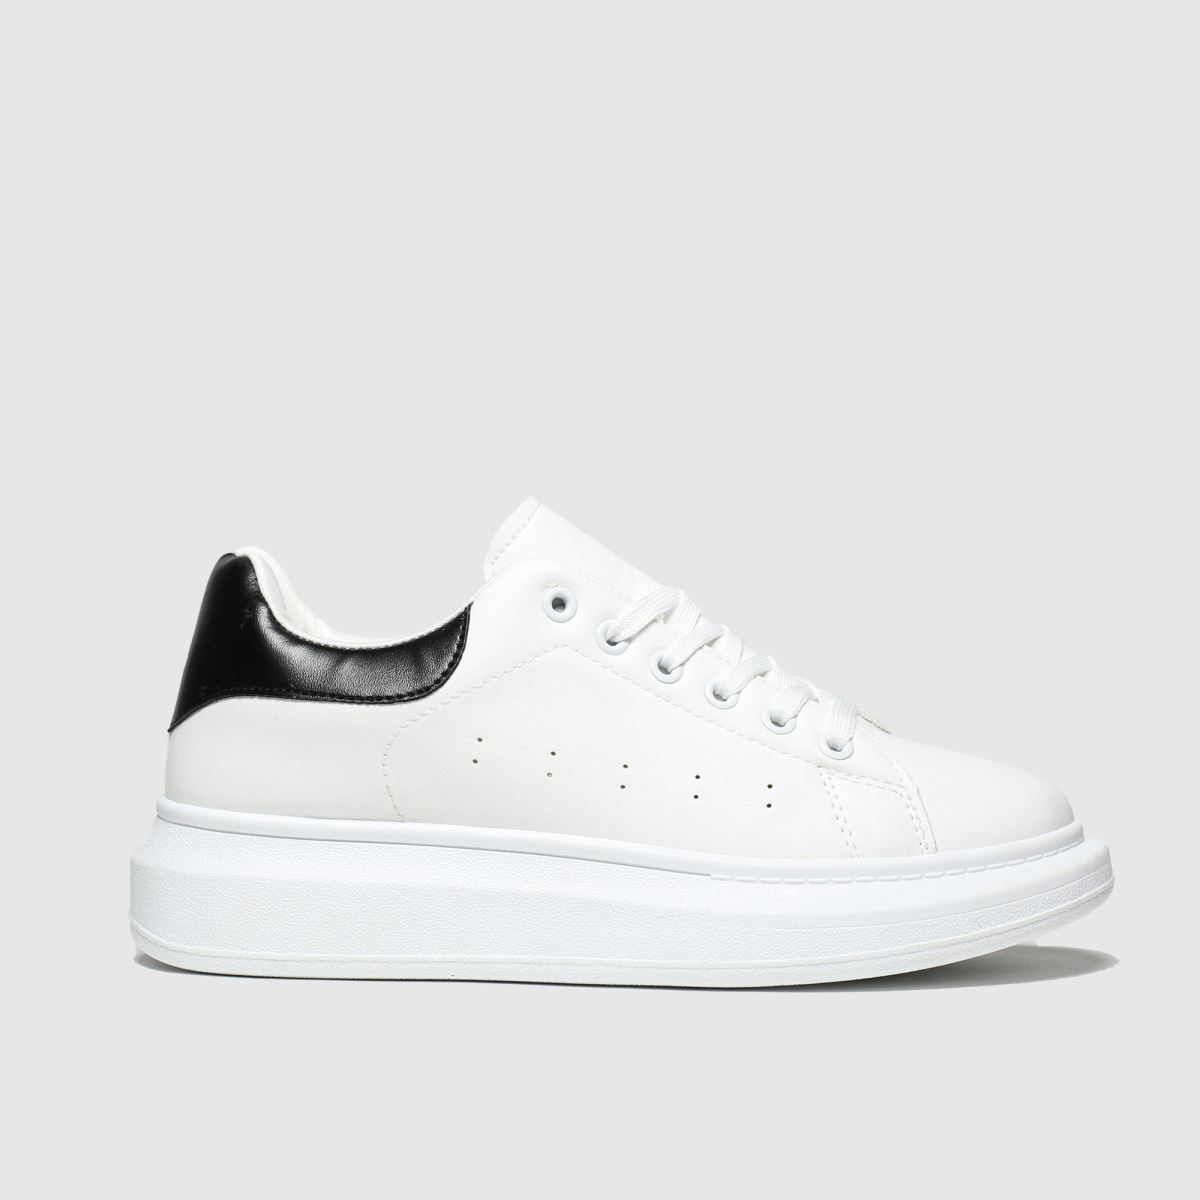 schuh Schuh White & Black Breezy Lace Up Trainers